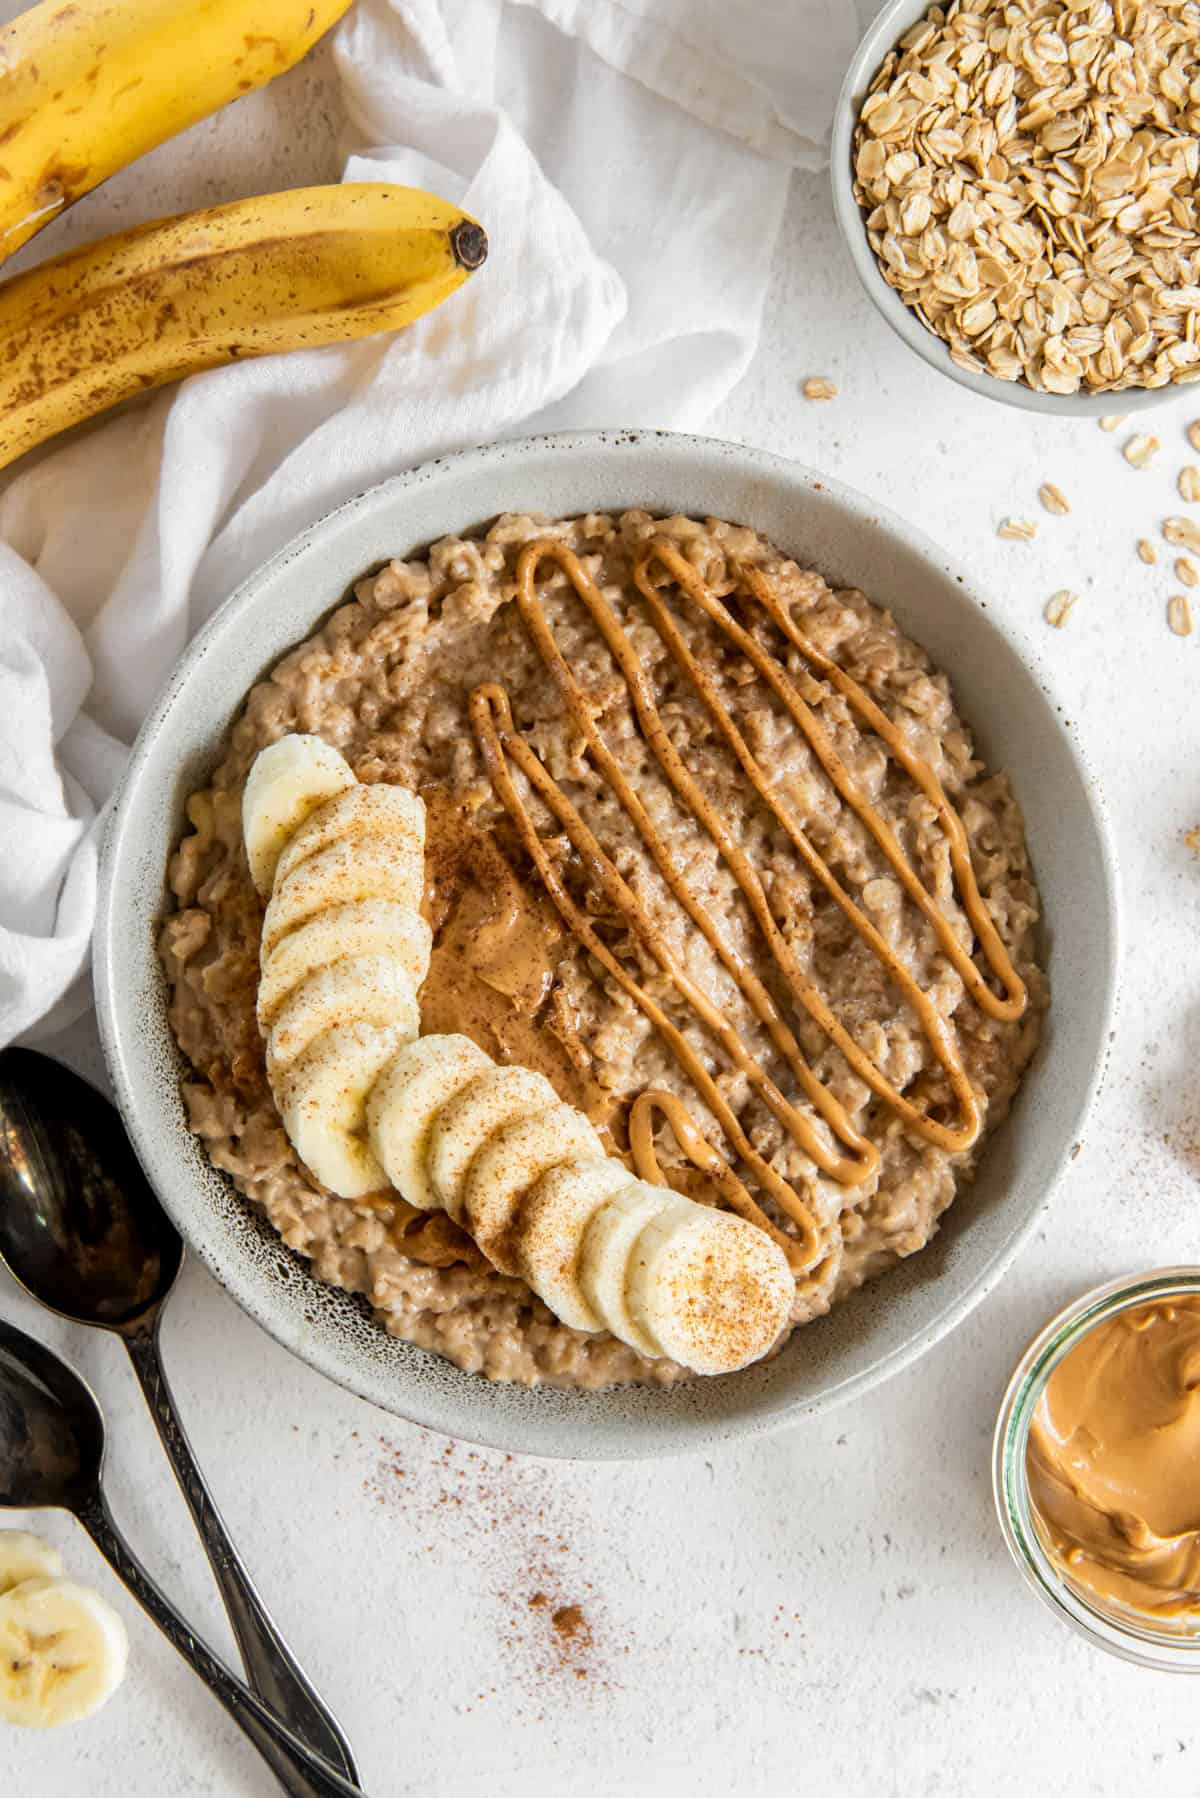 a bowl of peanut butter banana oatmeal with banana slices on top and drizzle of peanut butter